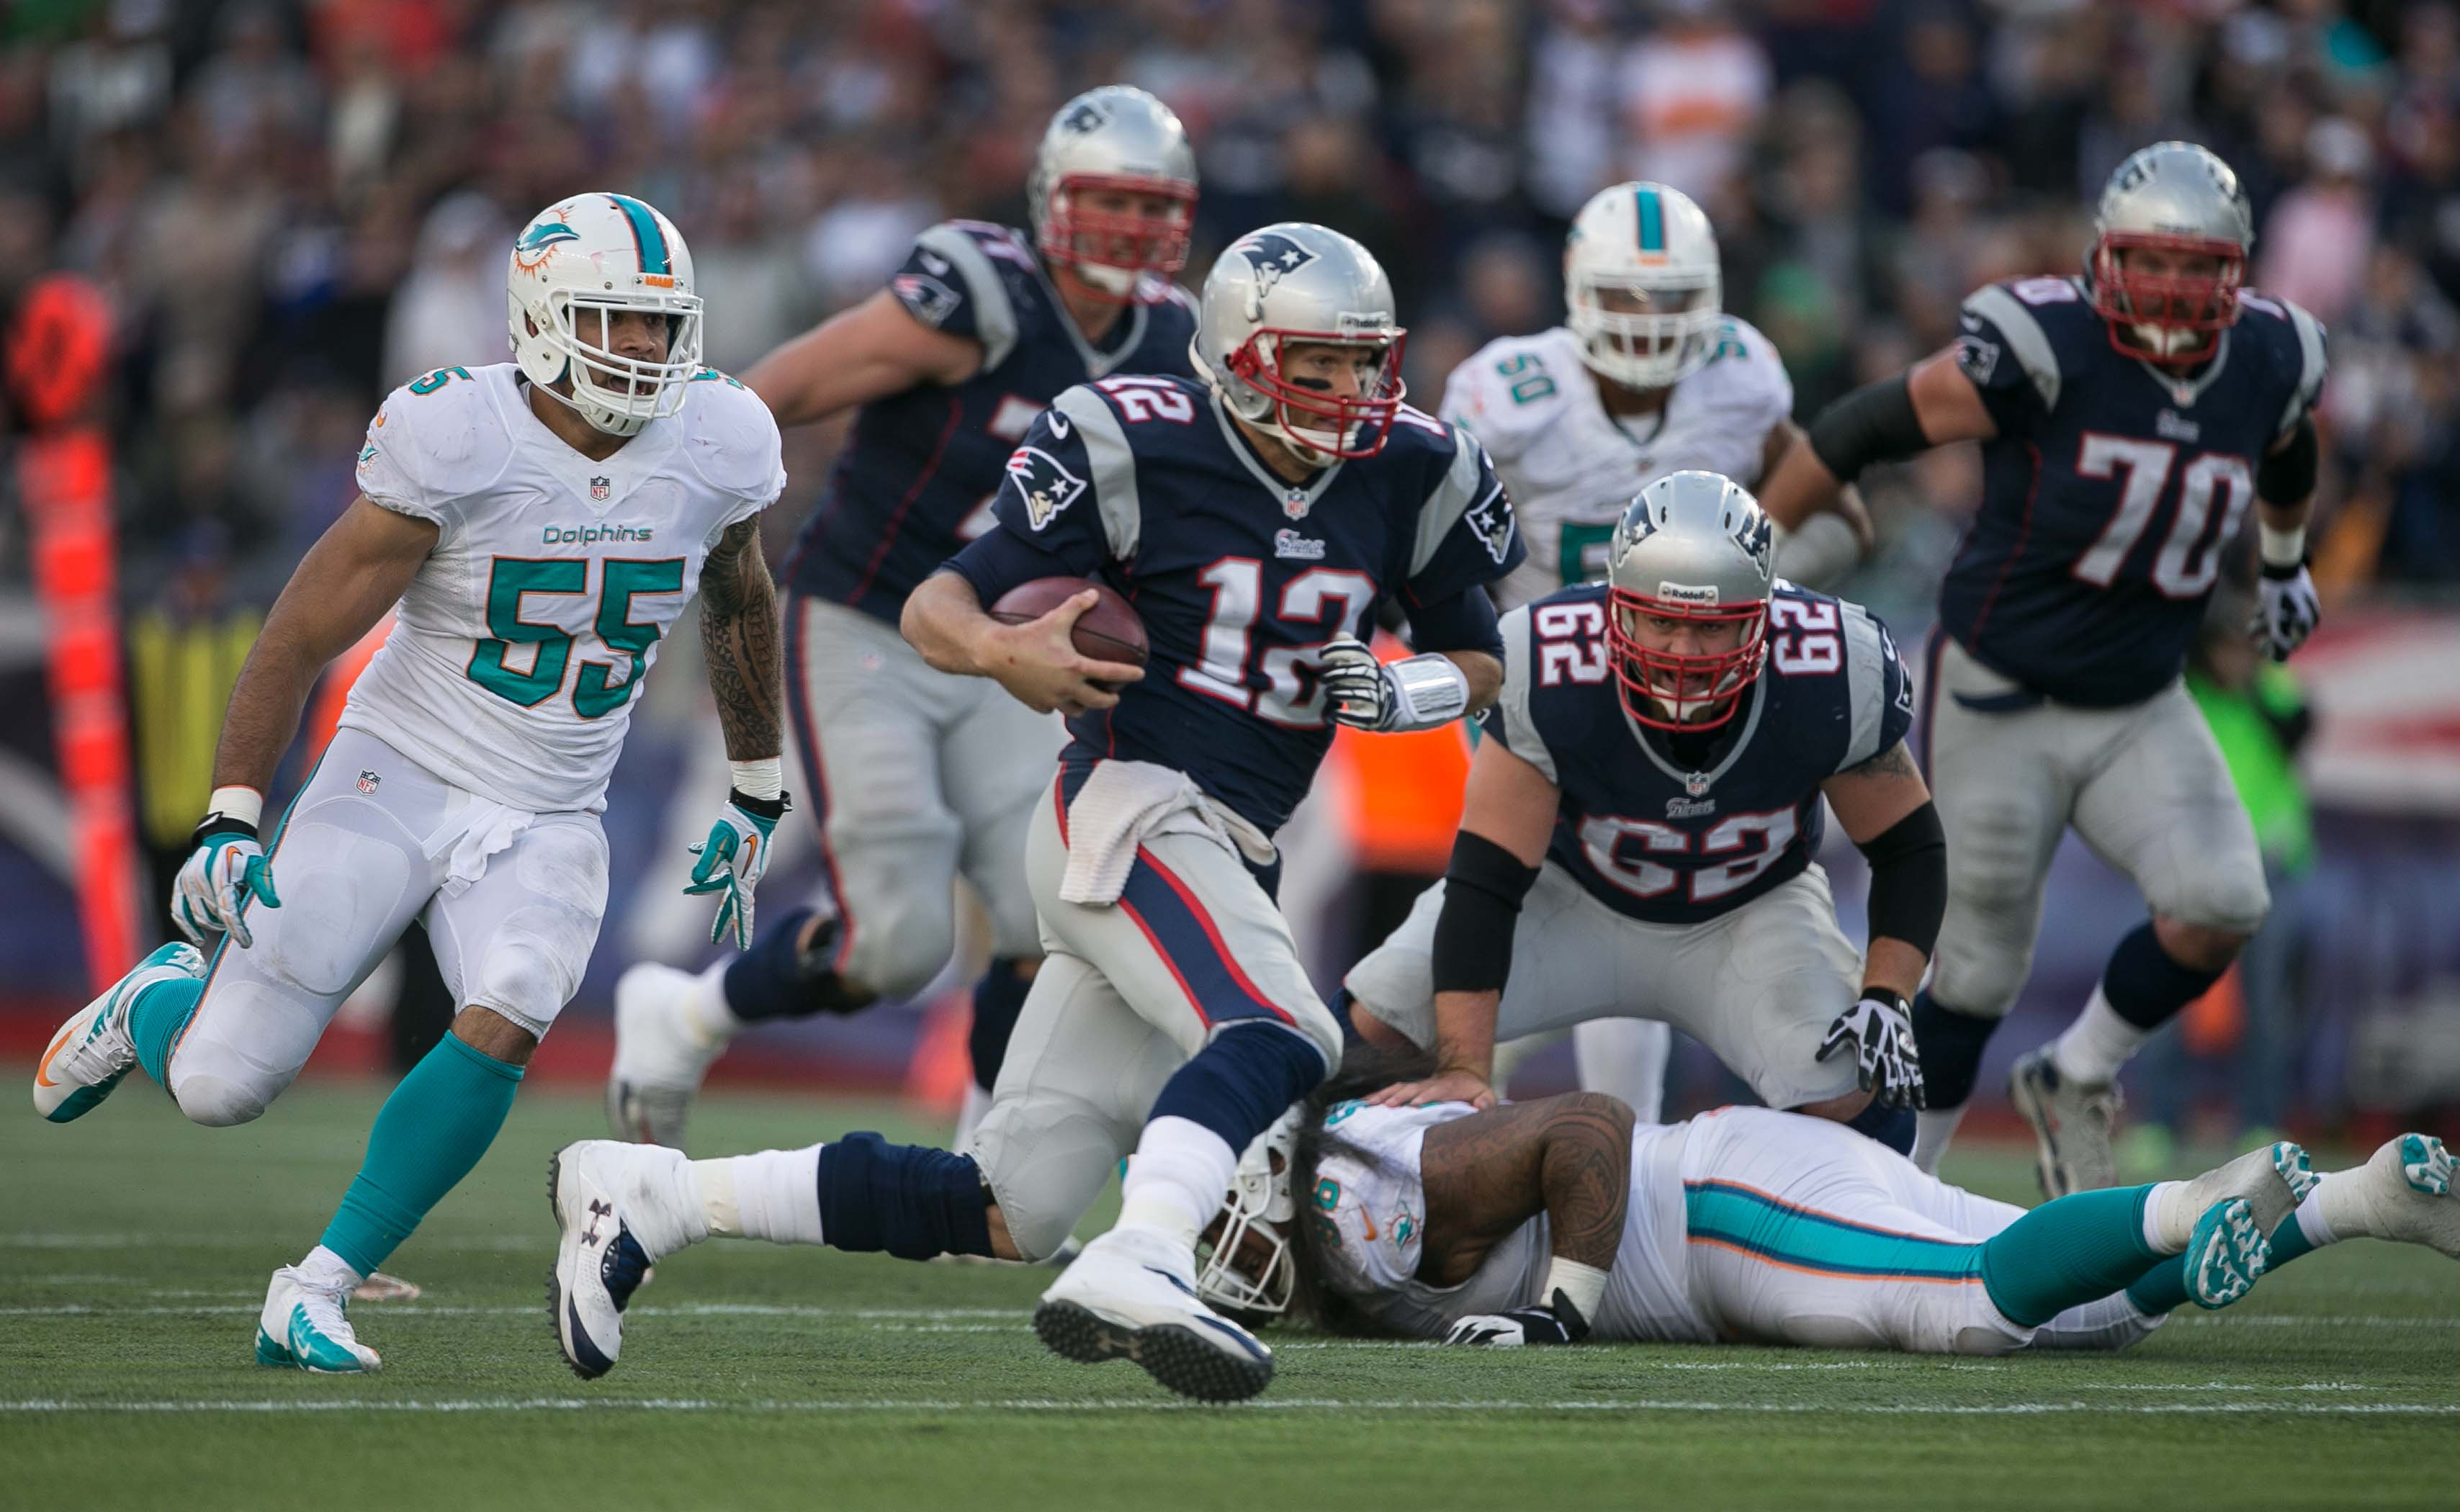 Visit ESPN to view the Miami Dolphins team schedule for the current and previous seasons